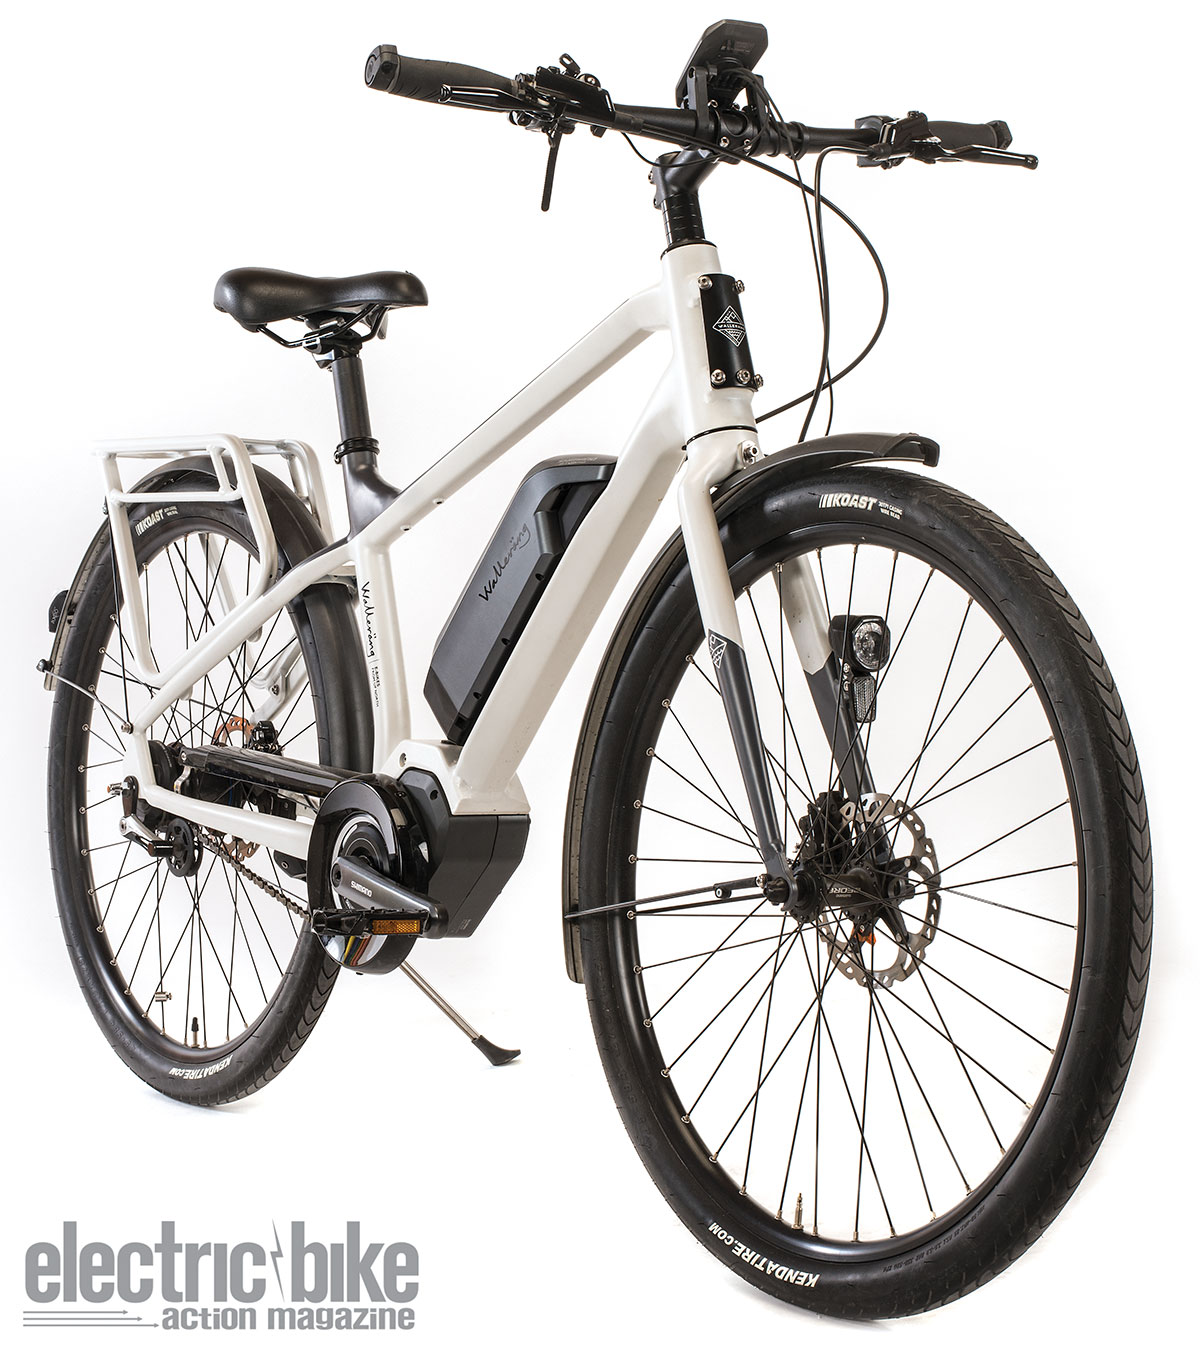 Navigating traffic and bike paths is fun in a bike with power to spare and the automatic shifting.